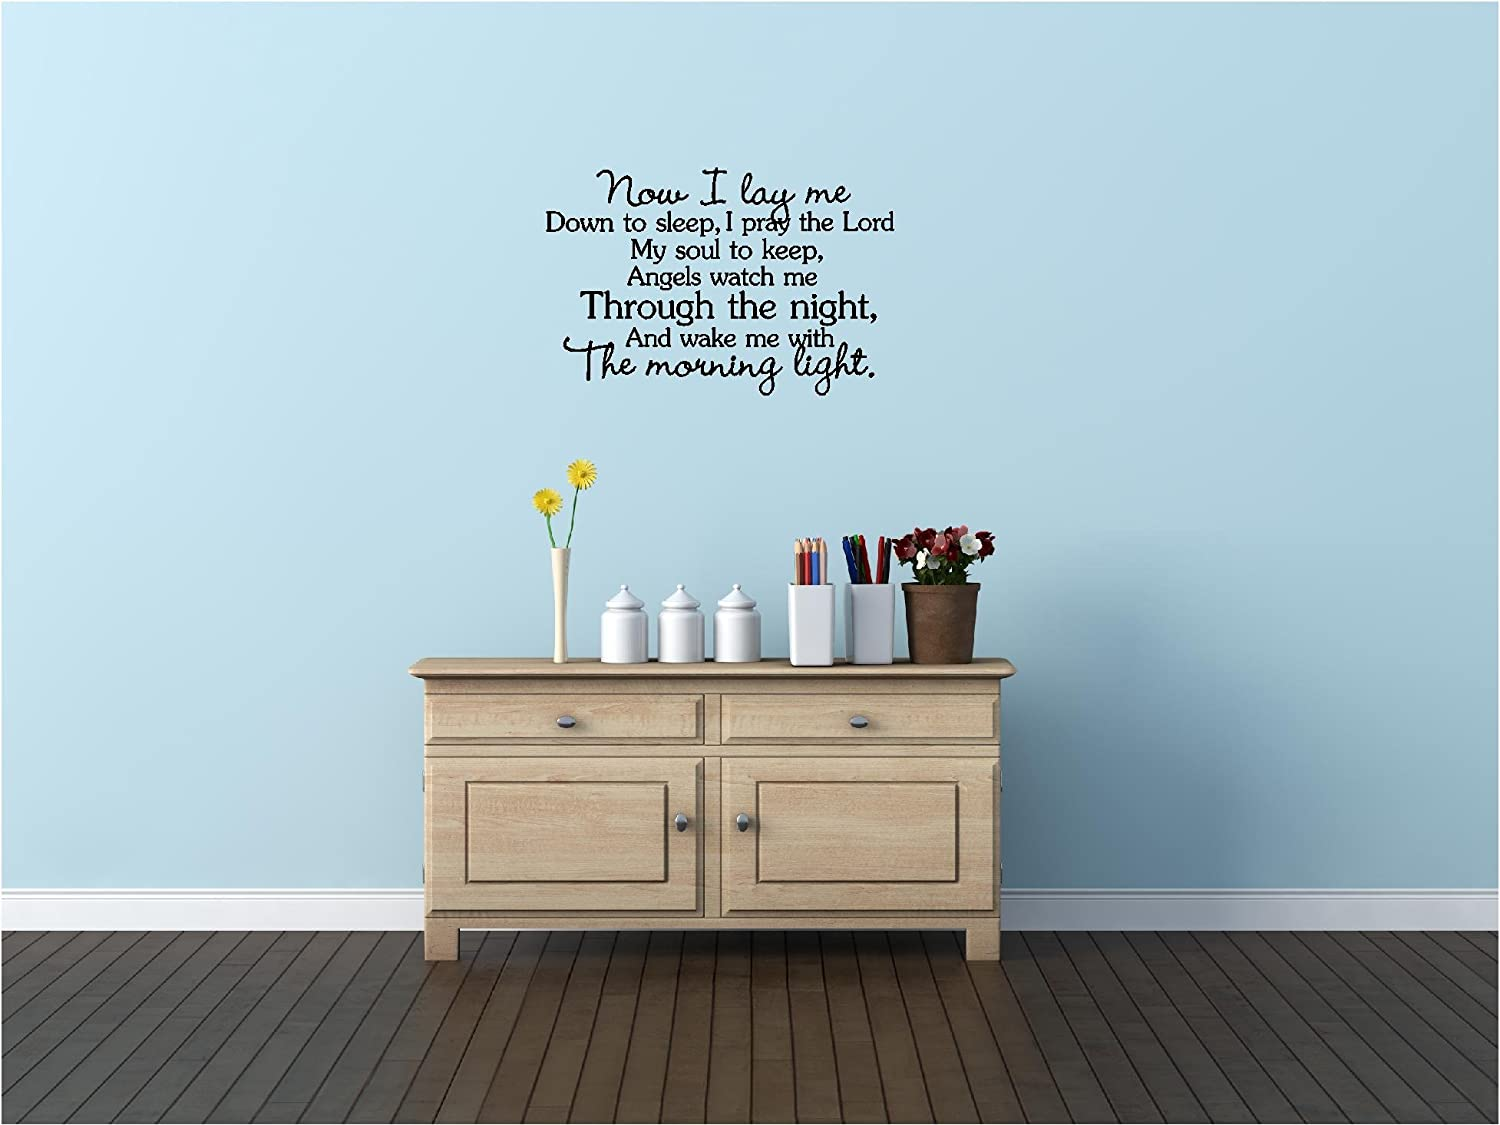 Now i lay me down to sleep wall decal - Amazon Com Now I Lay Me Down To Sleep I Pray The Lord My Soul To Keep Angels Watch Me Through The Night And Wake Me With The Morning Light Sweet Lullaby